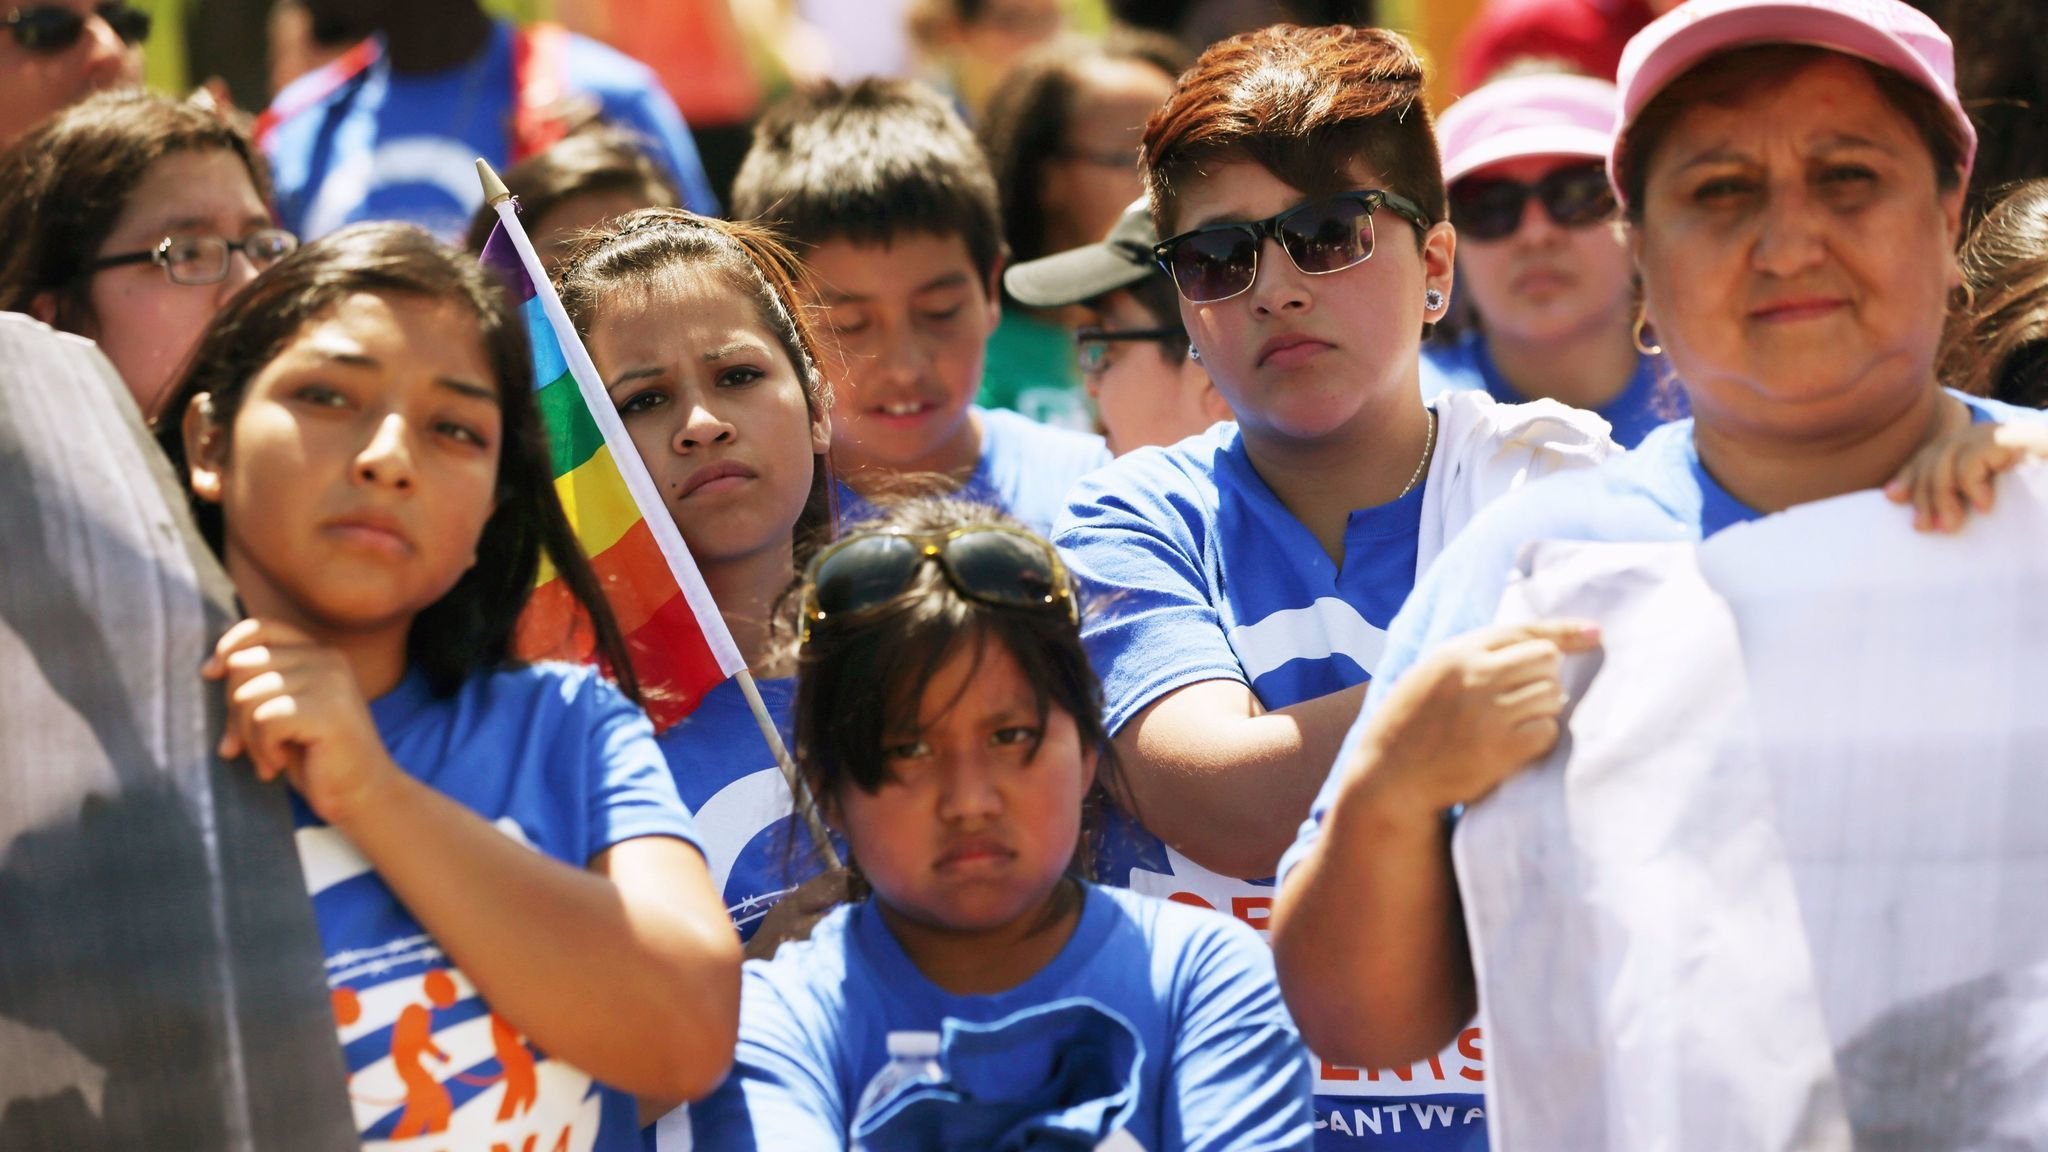 How children will suffer in the latest immigration battle